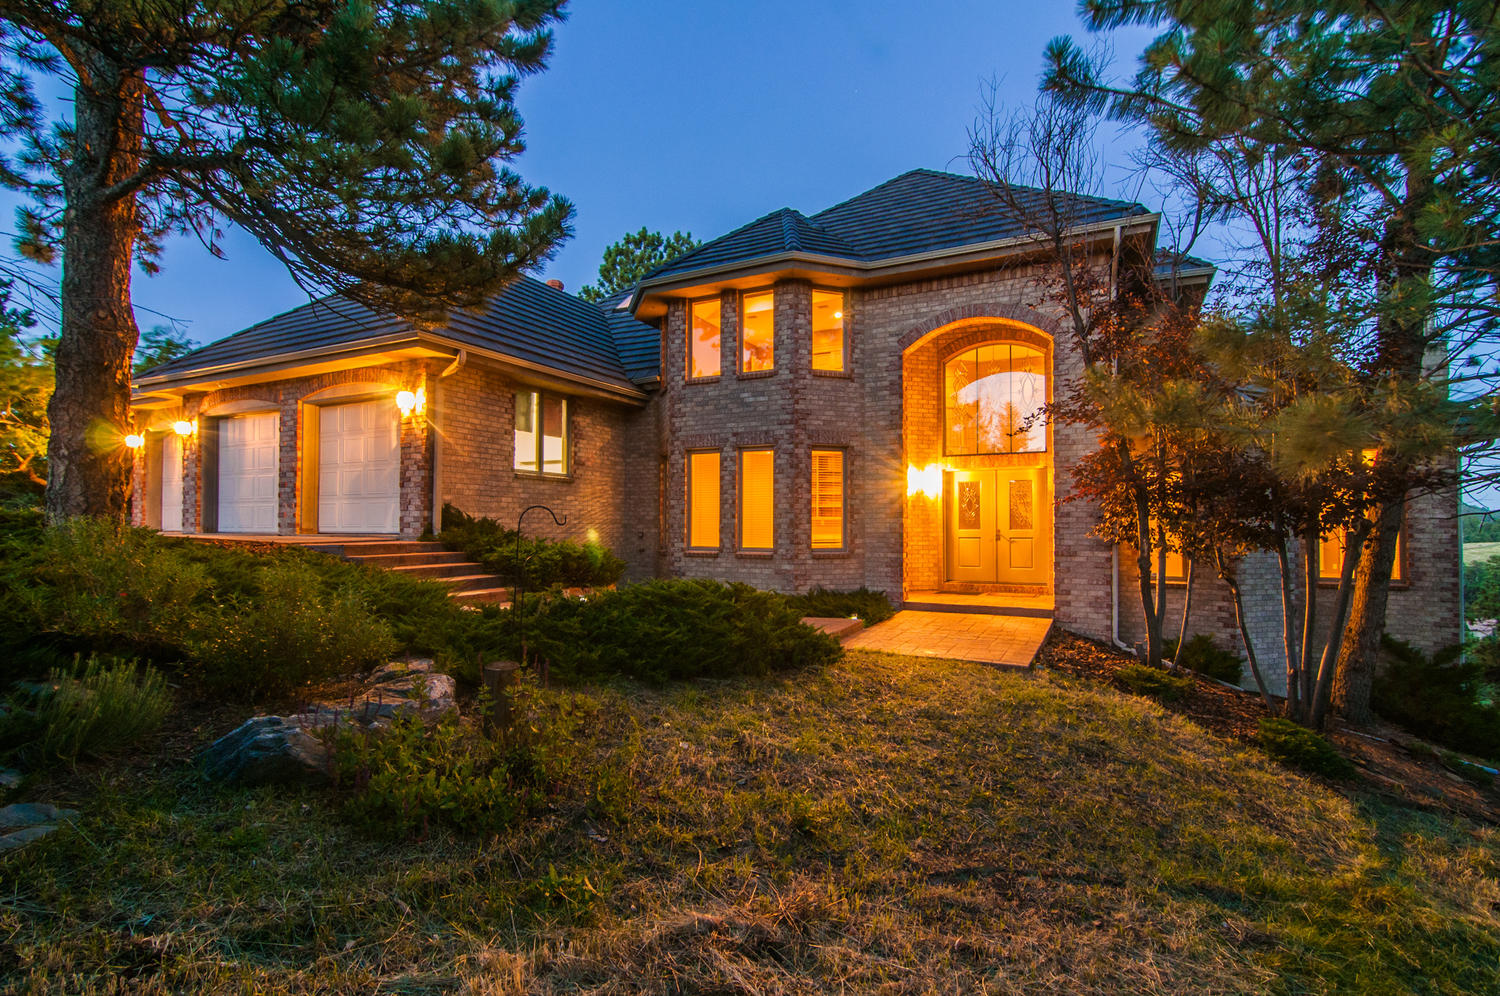 Single Family Home for Sale at Large, Light Home with Views 840 Kachina Circle Golden, Colorado, 80401 United States